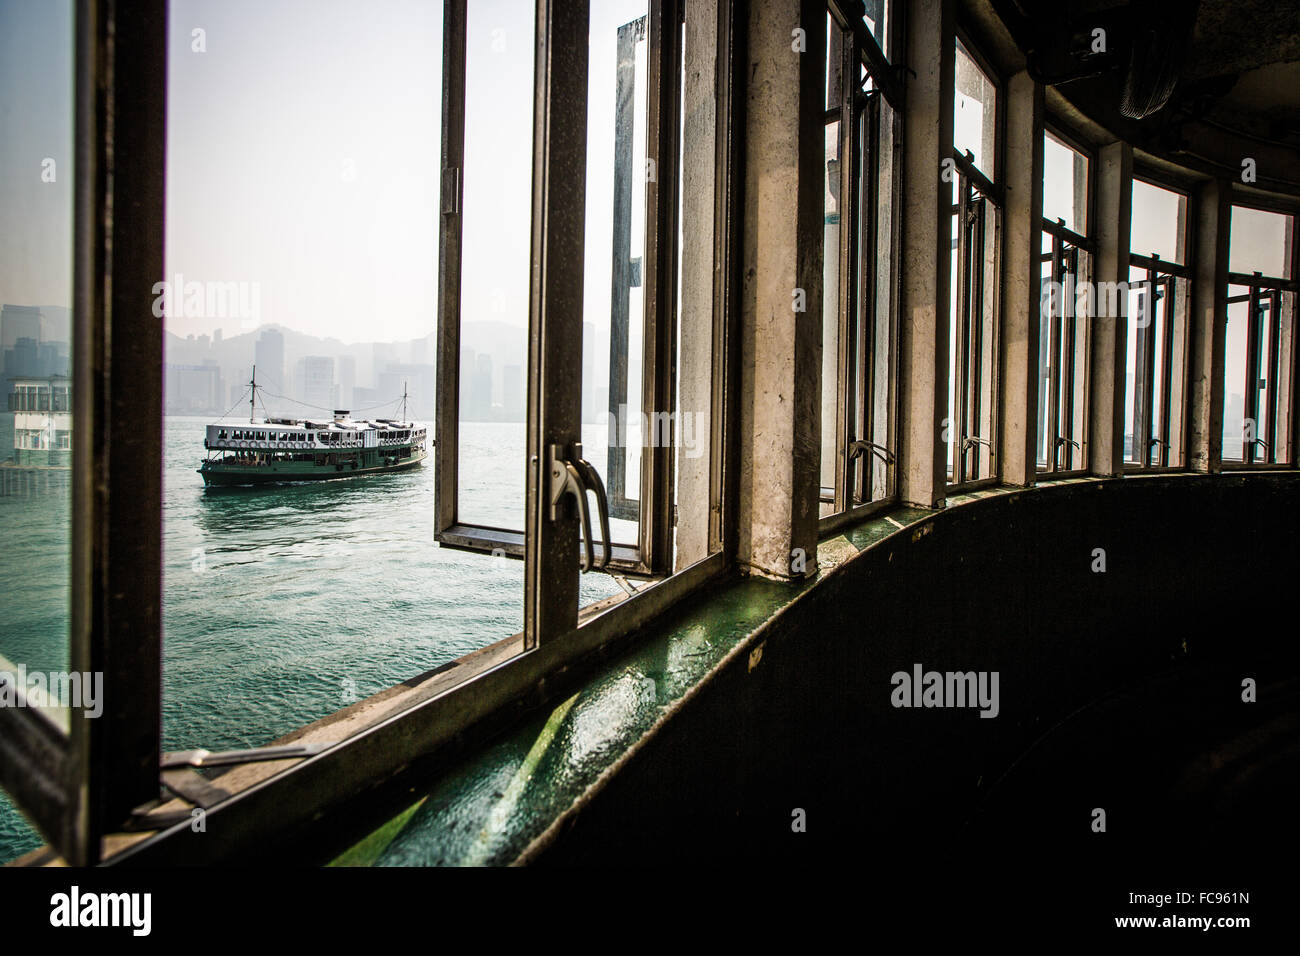 Star Ferry from Kowloon, Hong Kong, China, Asia Stock Photo